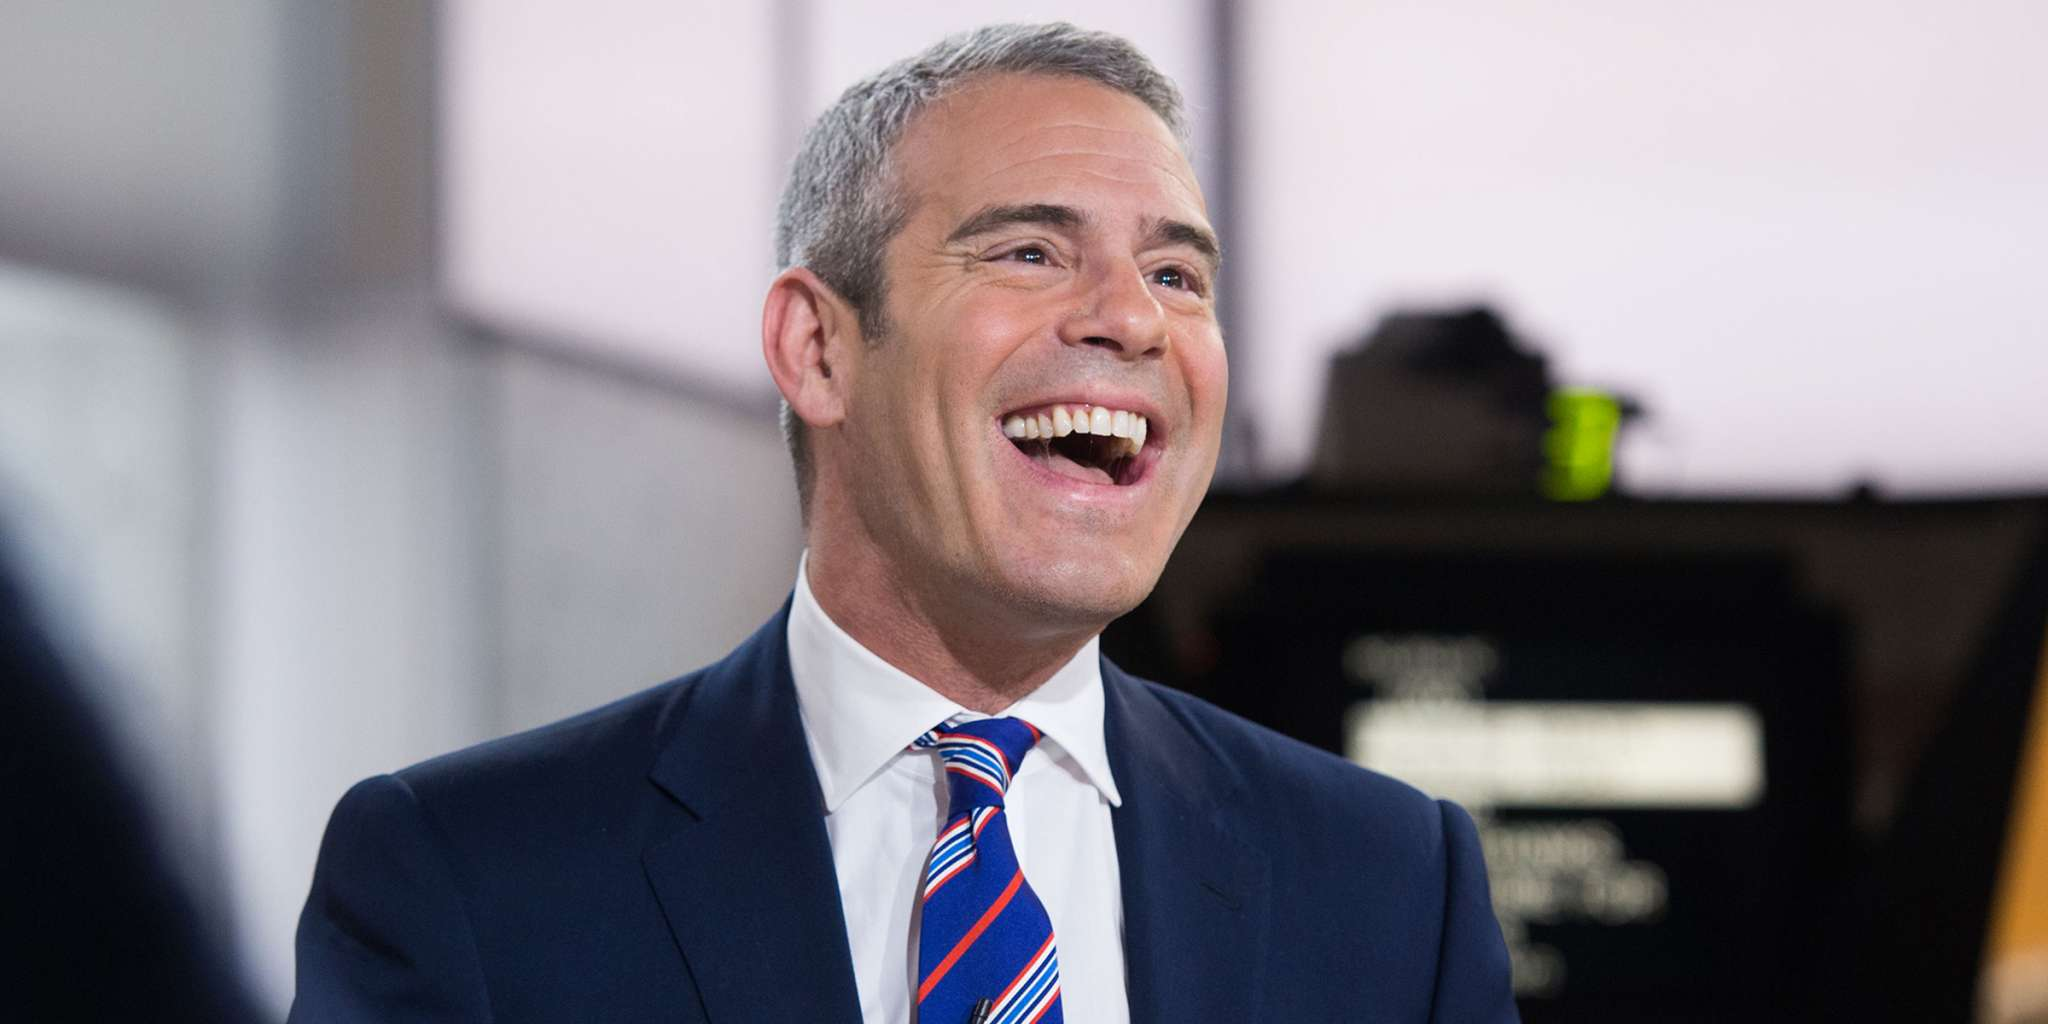 Andy Cohen Becomes a Daddy, Welcomes Son via Surrogate